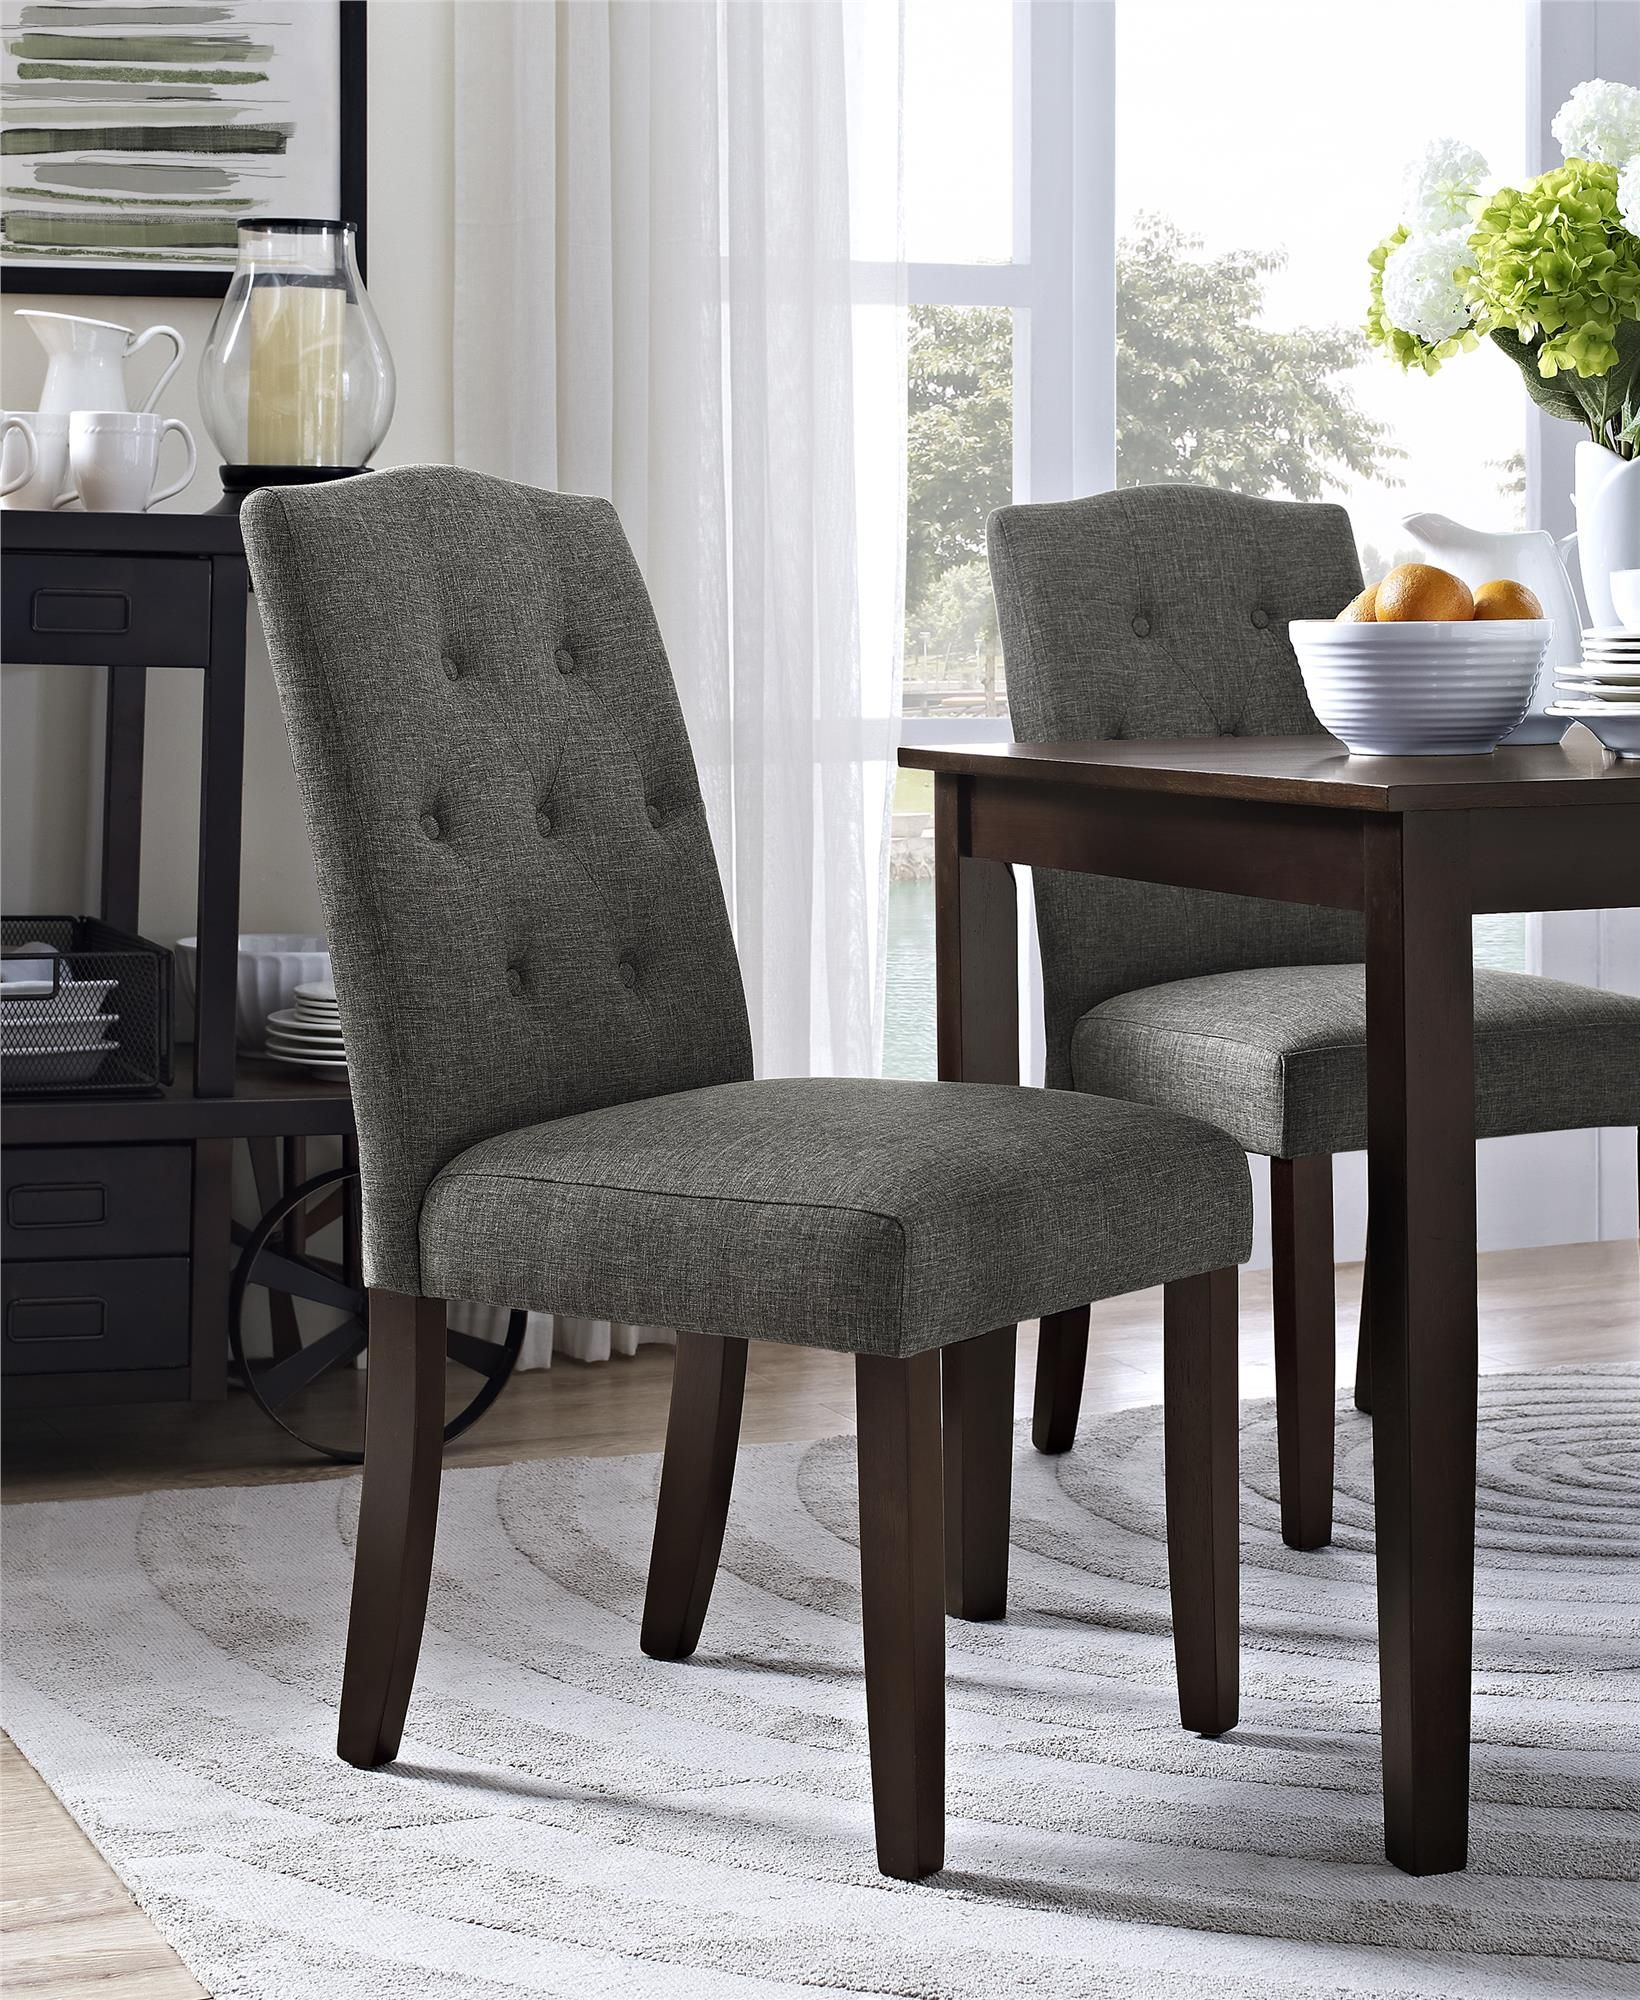 9492b7c16fc93b20028aa54a680e26cf - Better Homes And Gardens Parsons Tufted Dining Chair Beige